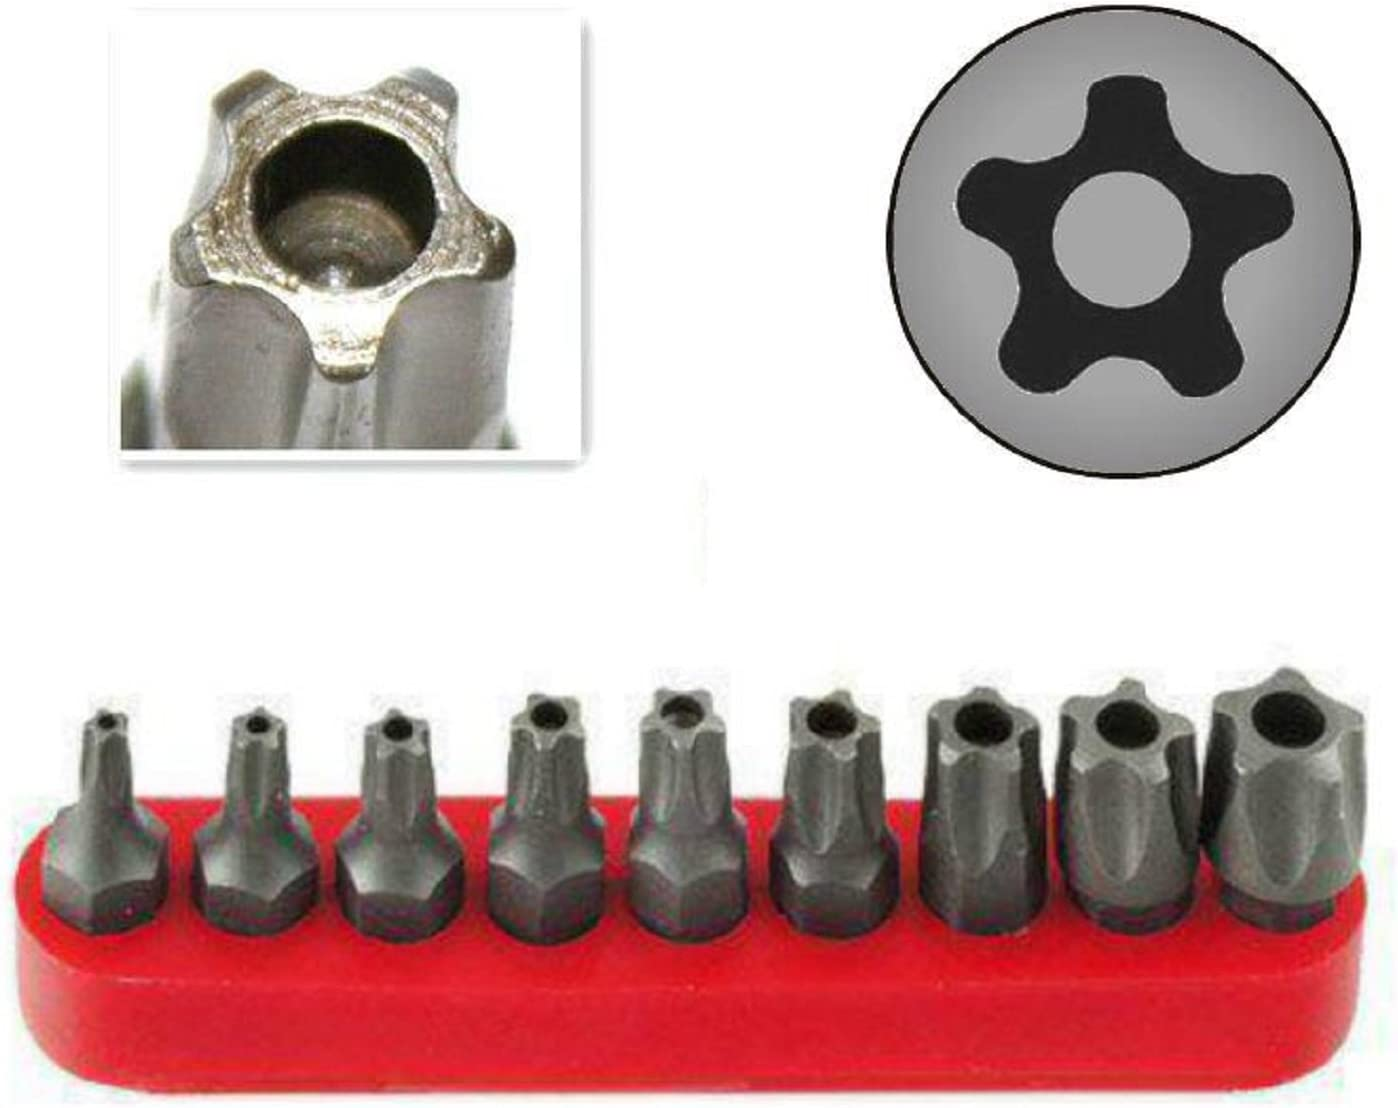 15,20,25,27,30,40,45,50 Multifunction Damage//Shear Resistant Hollow Torque Kit Driver Bit Set Security Tamper Proof T10 Ram-Pro 9Pc Torx Star 5 Point